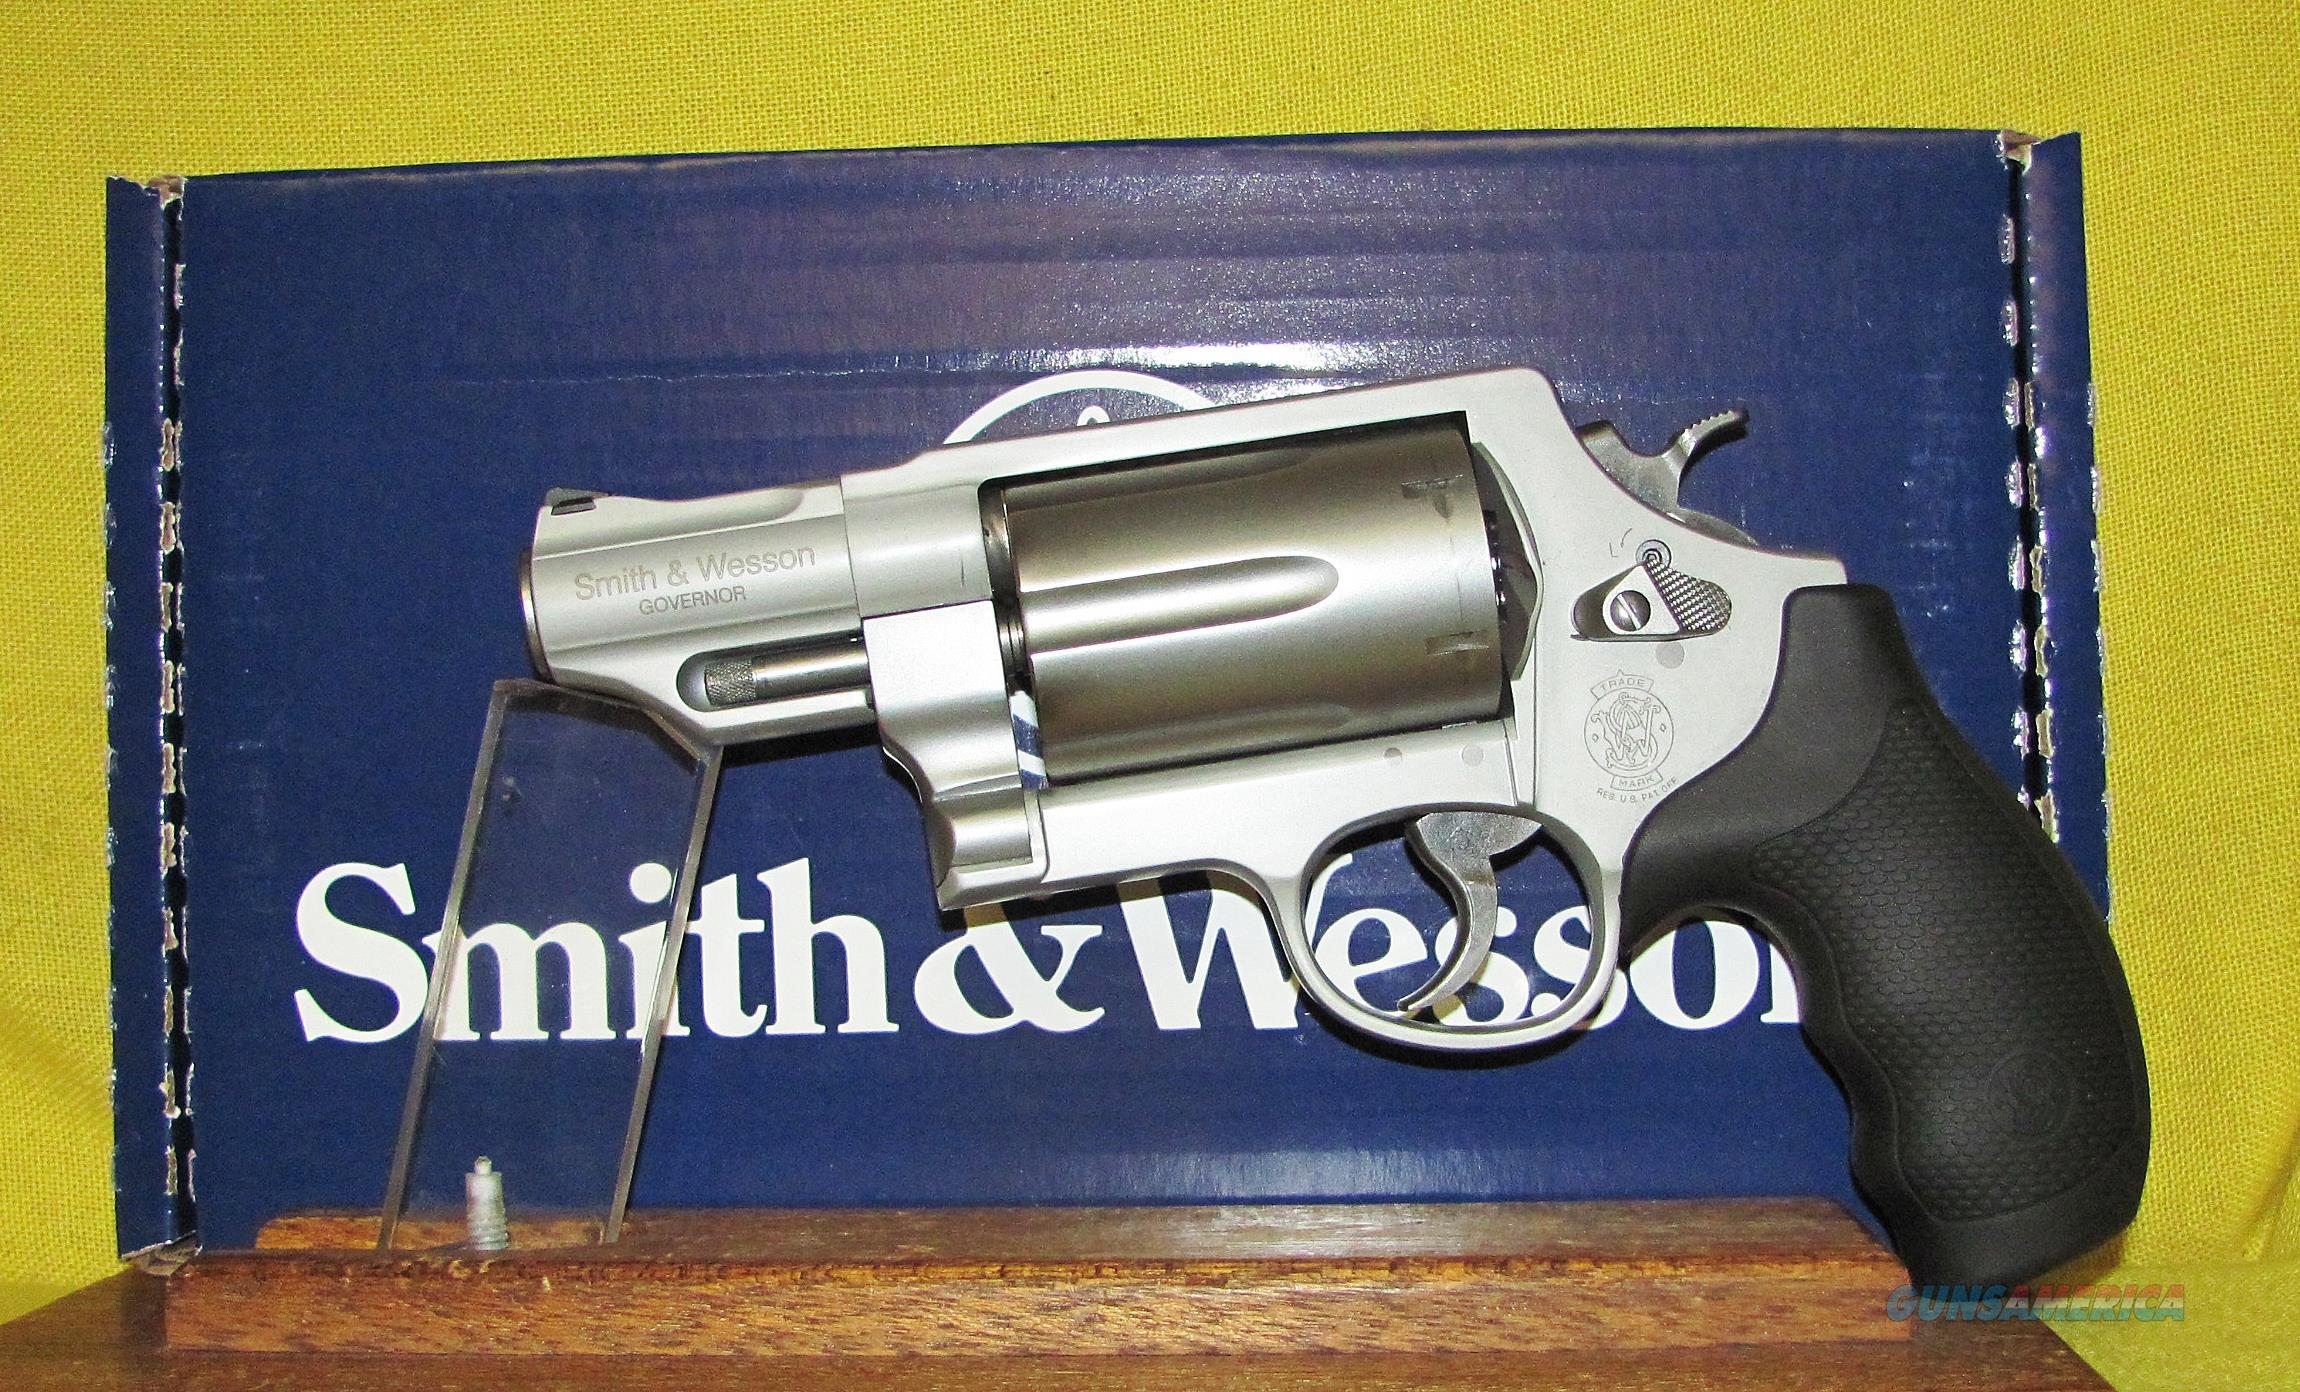 S&W GOVERNOR  Guns > Pistols > Smith & Wesson Revolvers > Full Frame Revolver